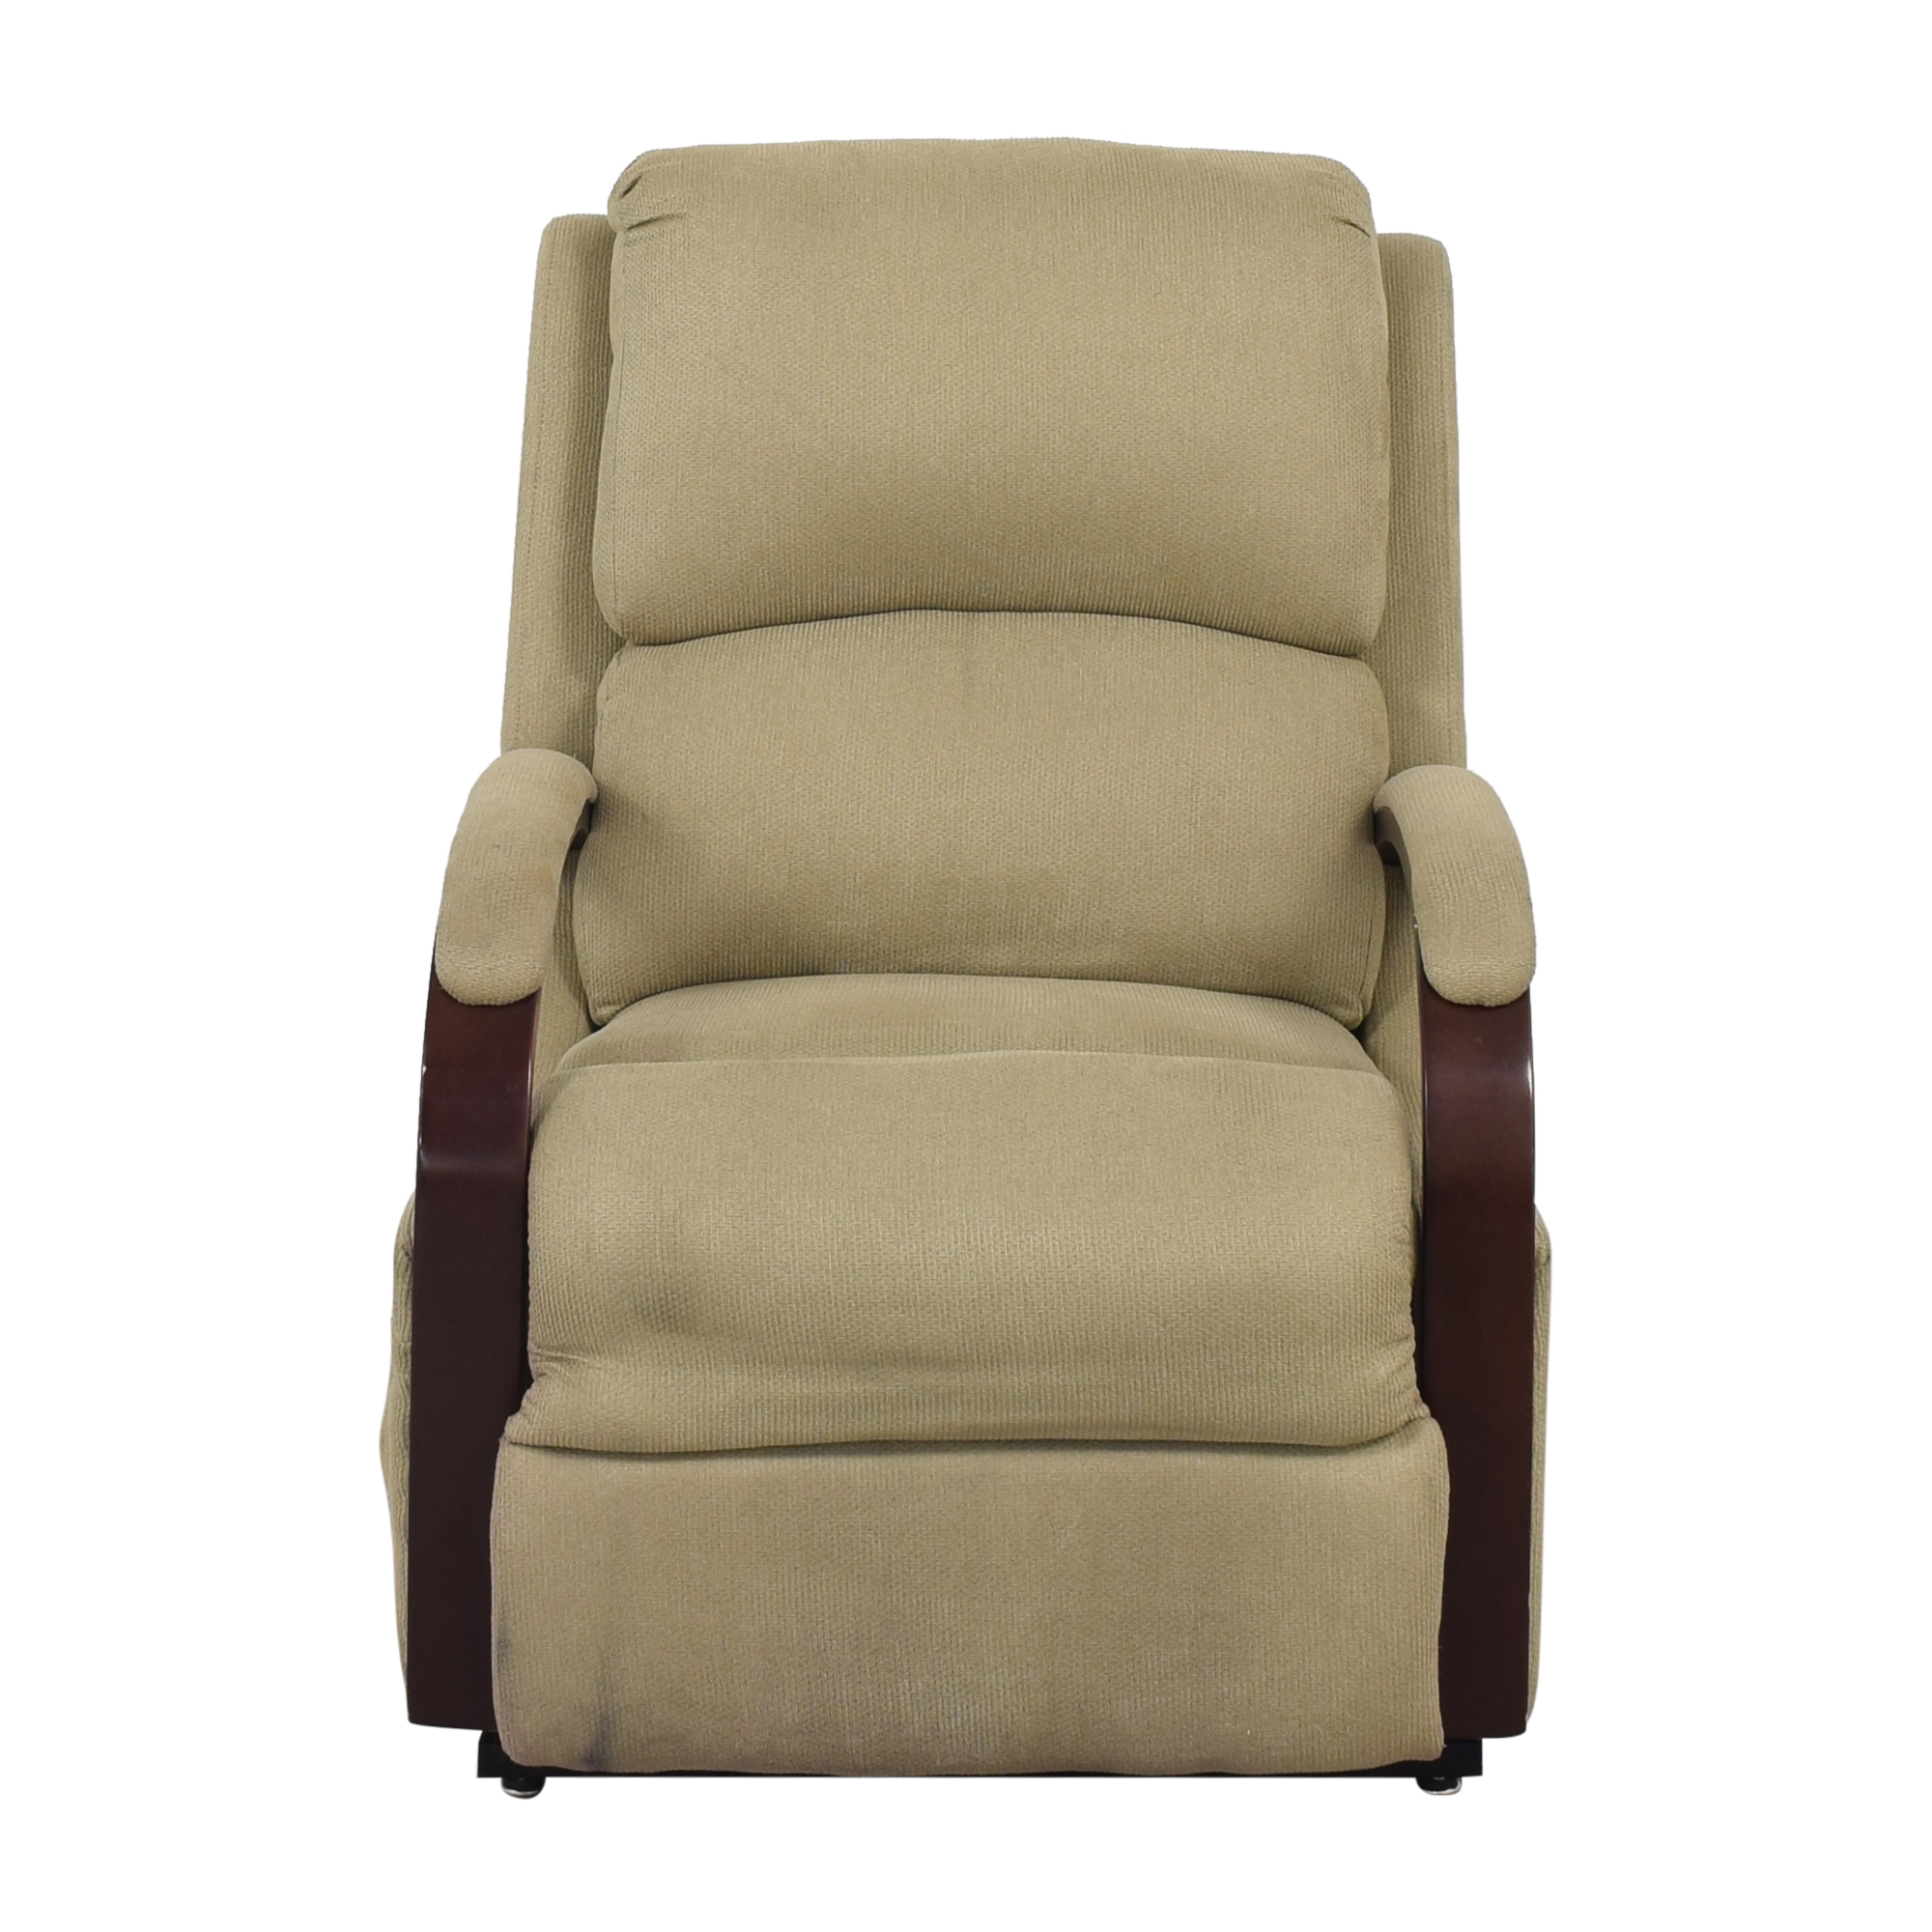 81 off macy s macy s power lift recliner chair chairs